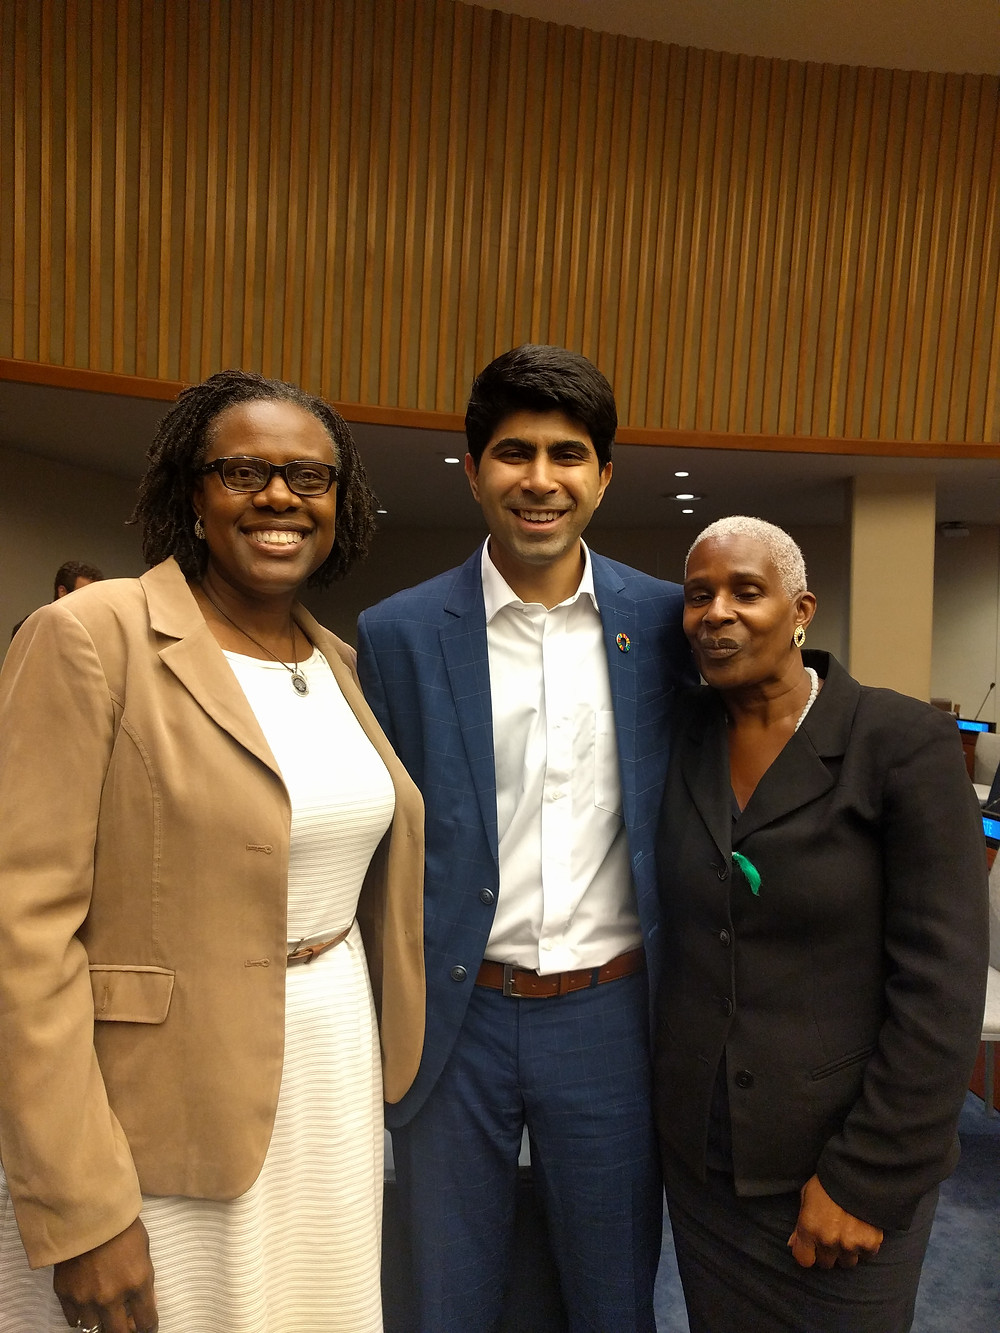 Wynnie-Fred Victor Hinds,  Ankit Kawatra, Feeding India & SDG Younf Leader and Wandalynn Miftahi